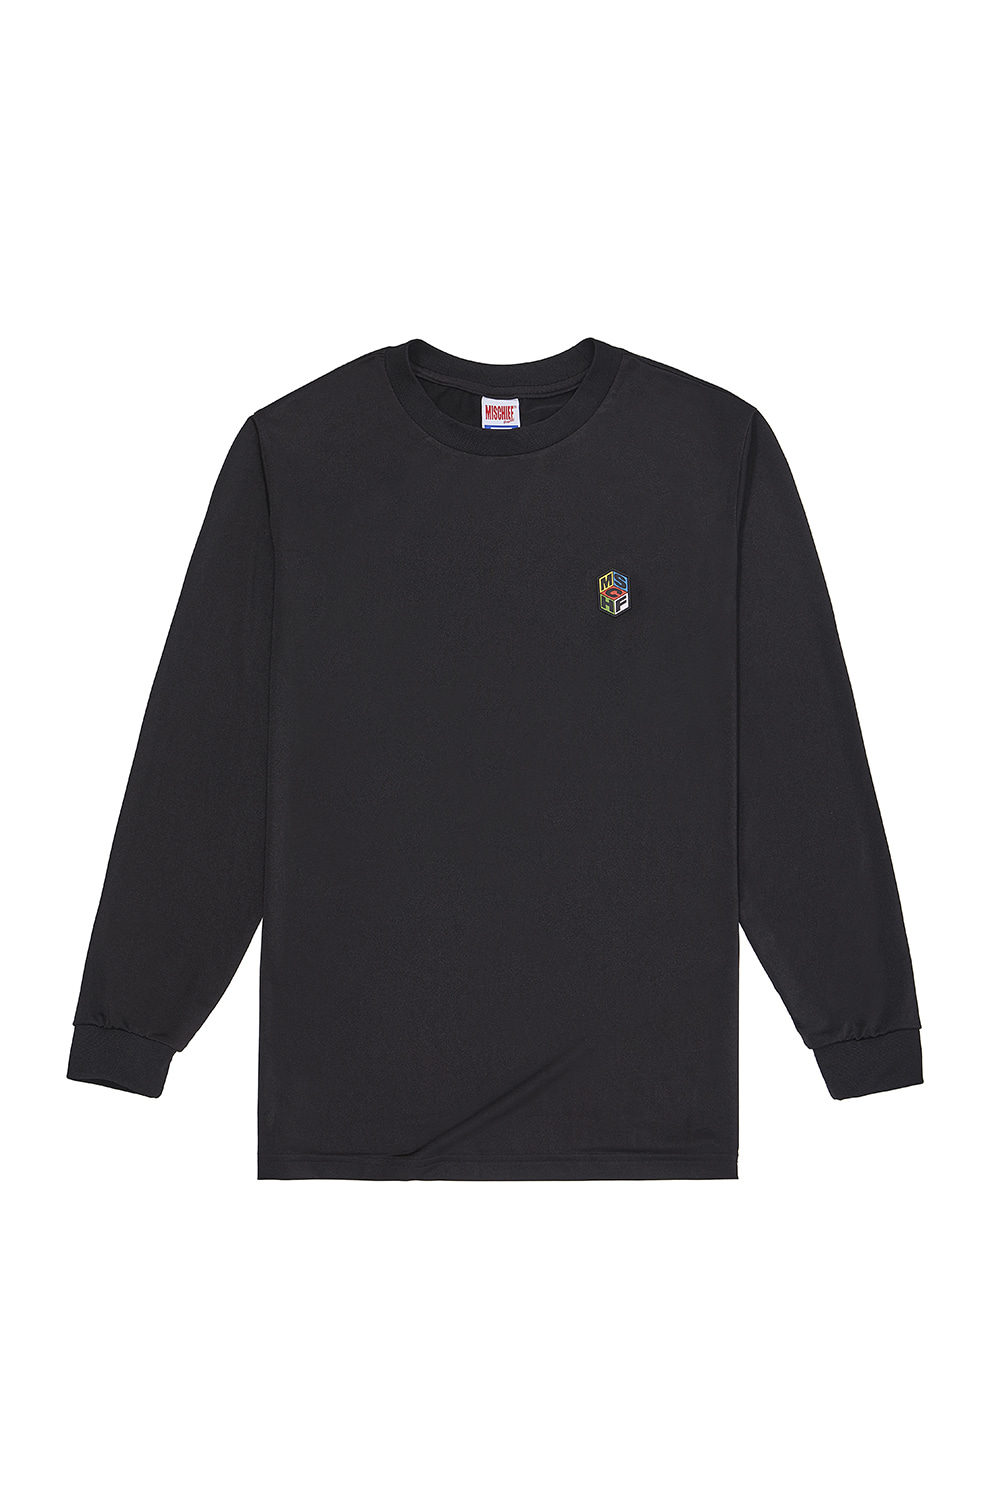 MSCHF_DICE LONG SLEEVE_black